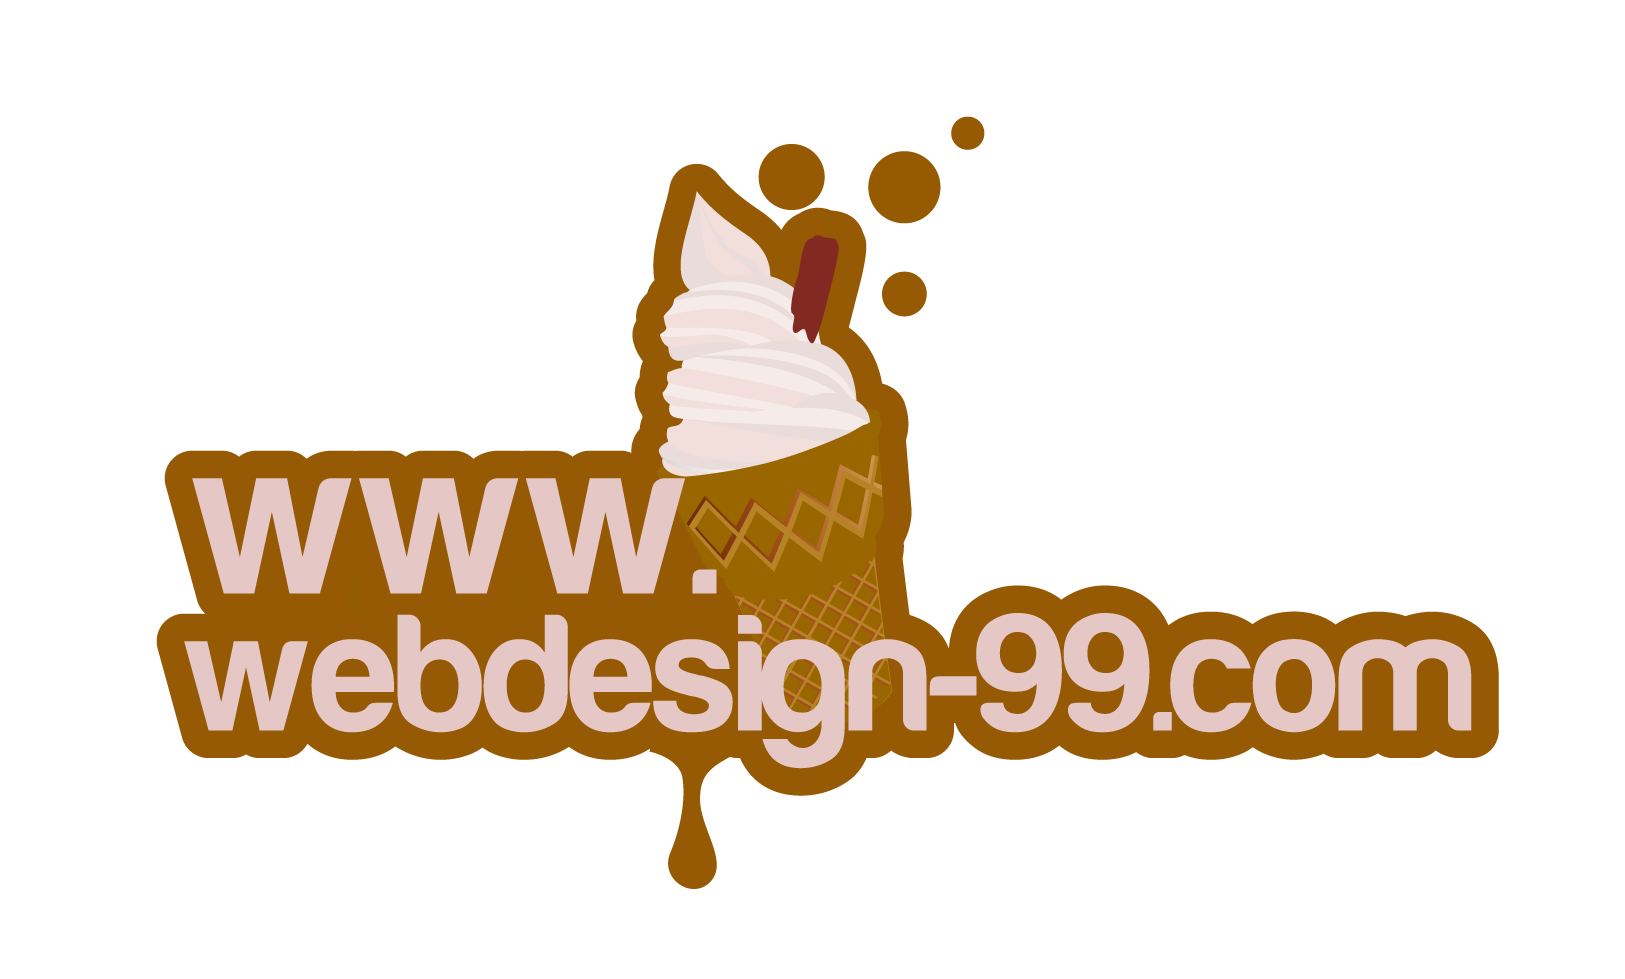 Web Design from £99 or £9 a month